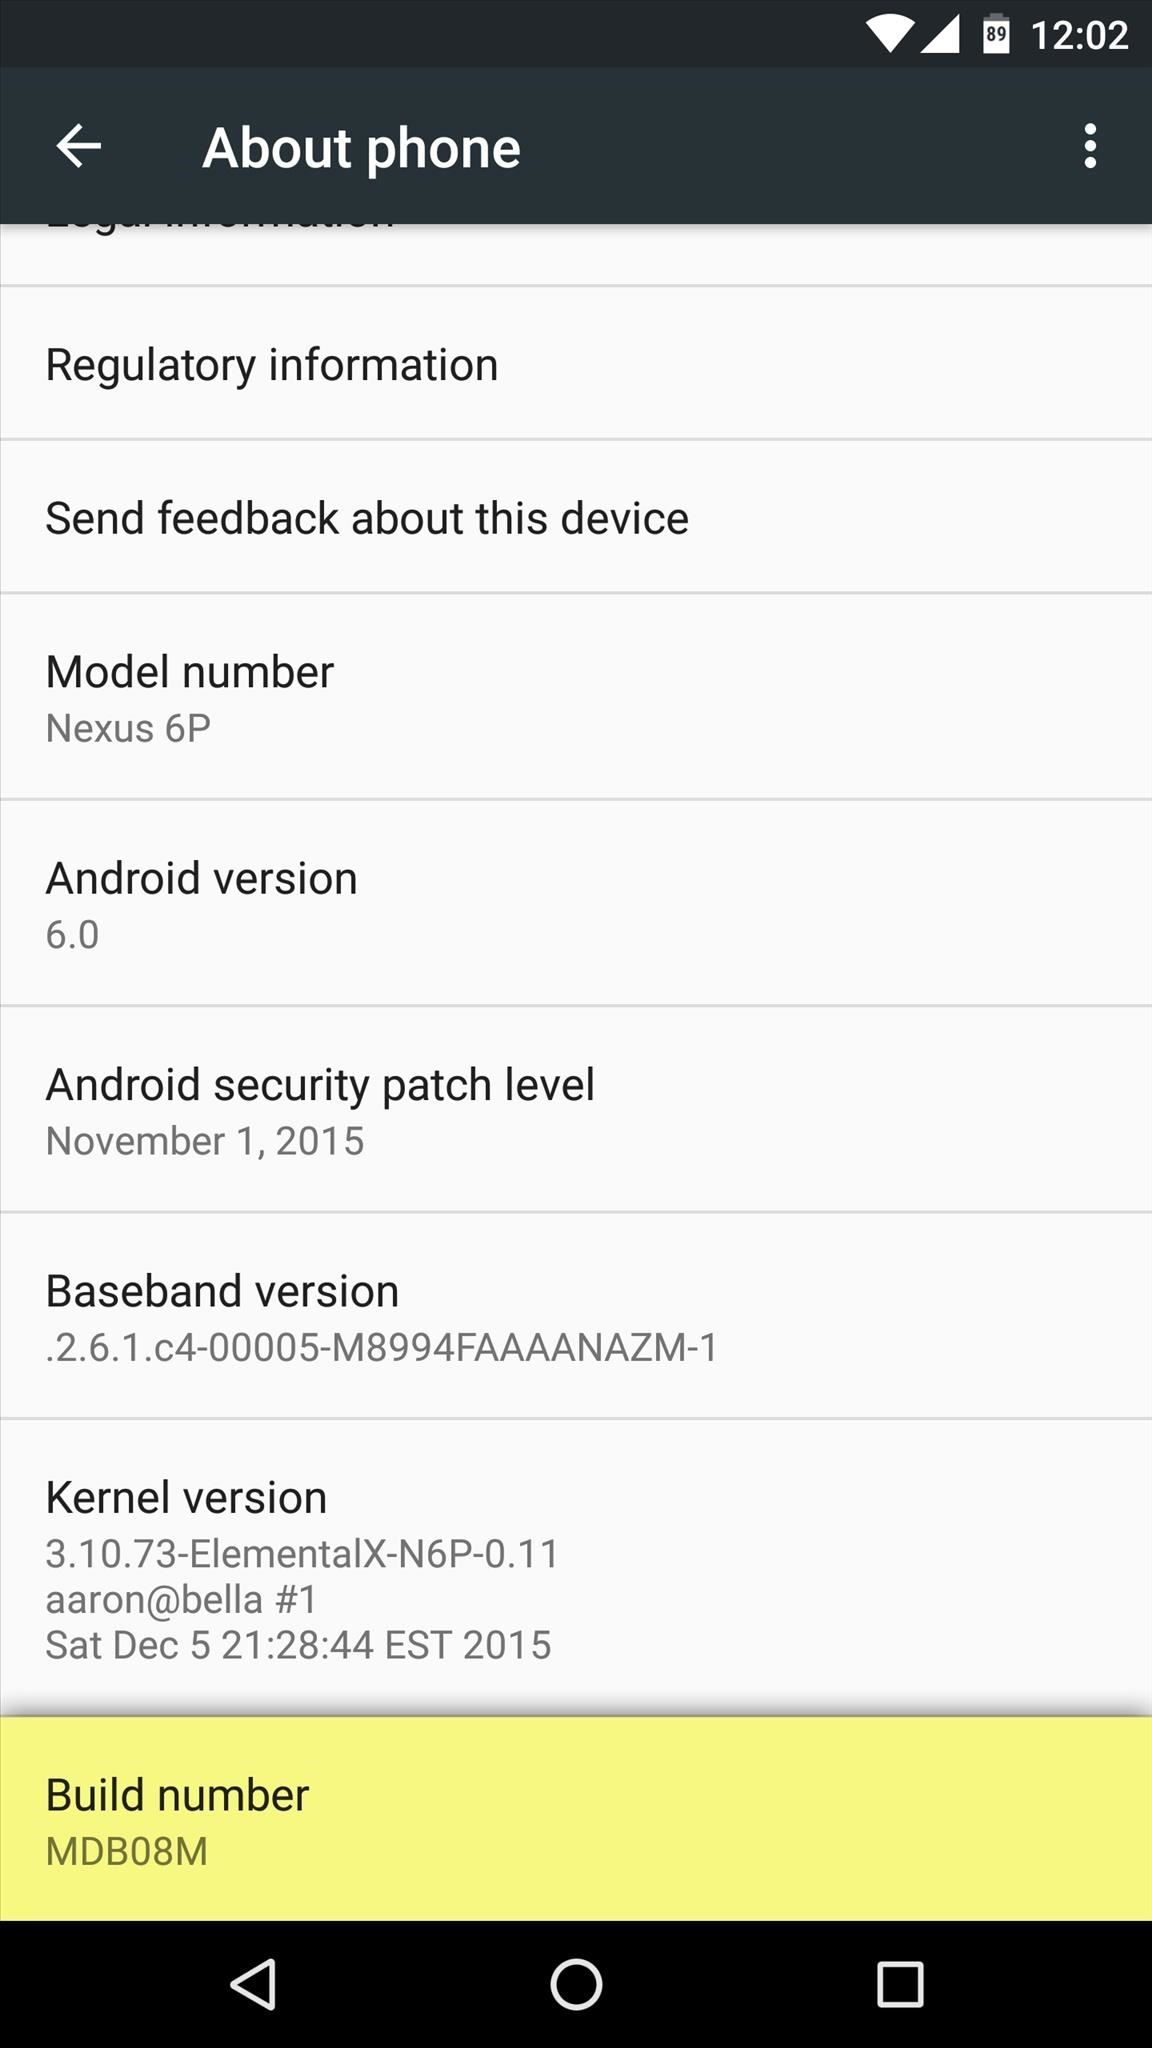 Android Basics: How to Tell What Android Version & Build Number You Have